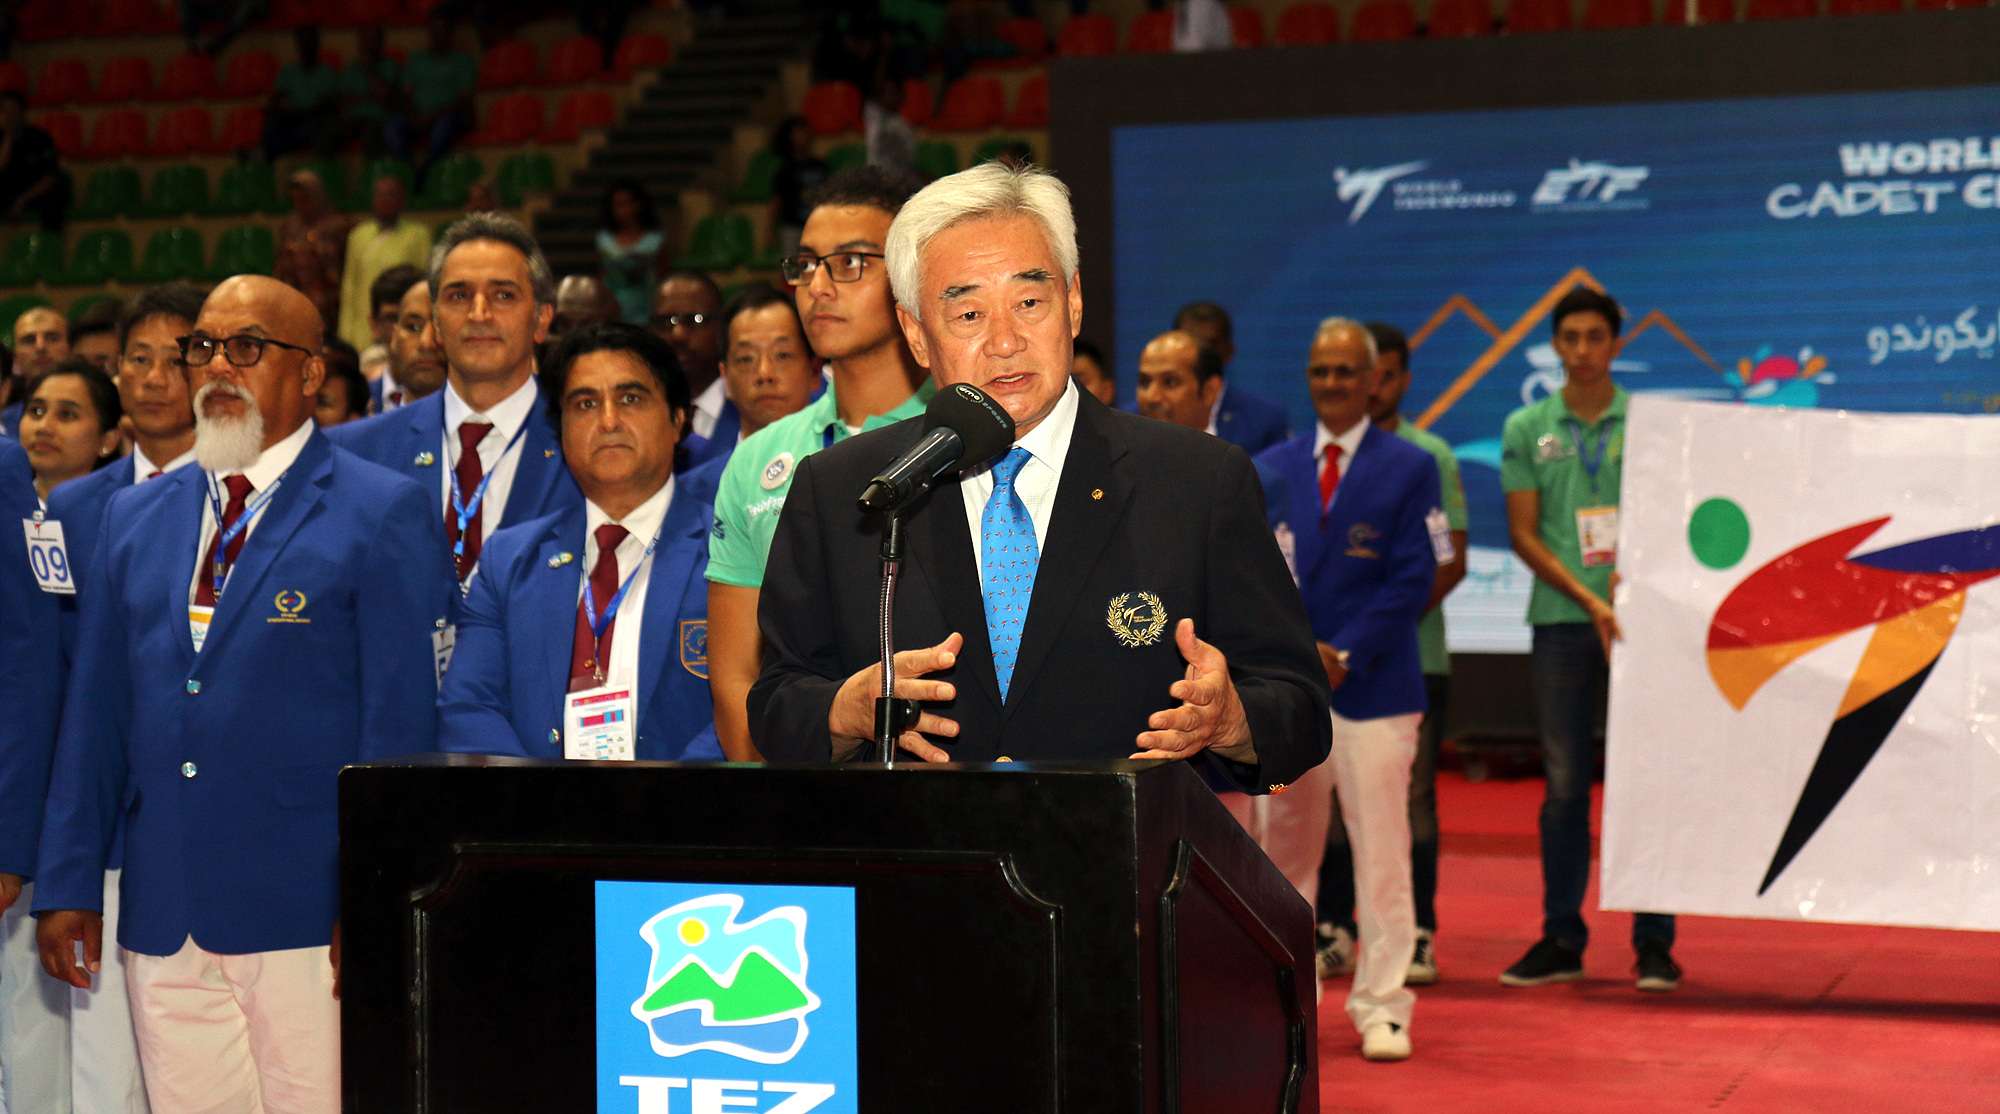 WT President Chungwon Choue gives a speech during the opening ceremony